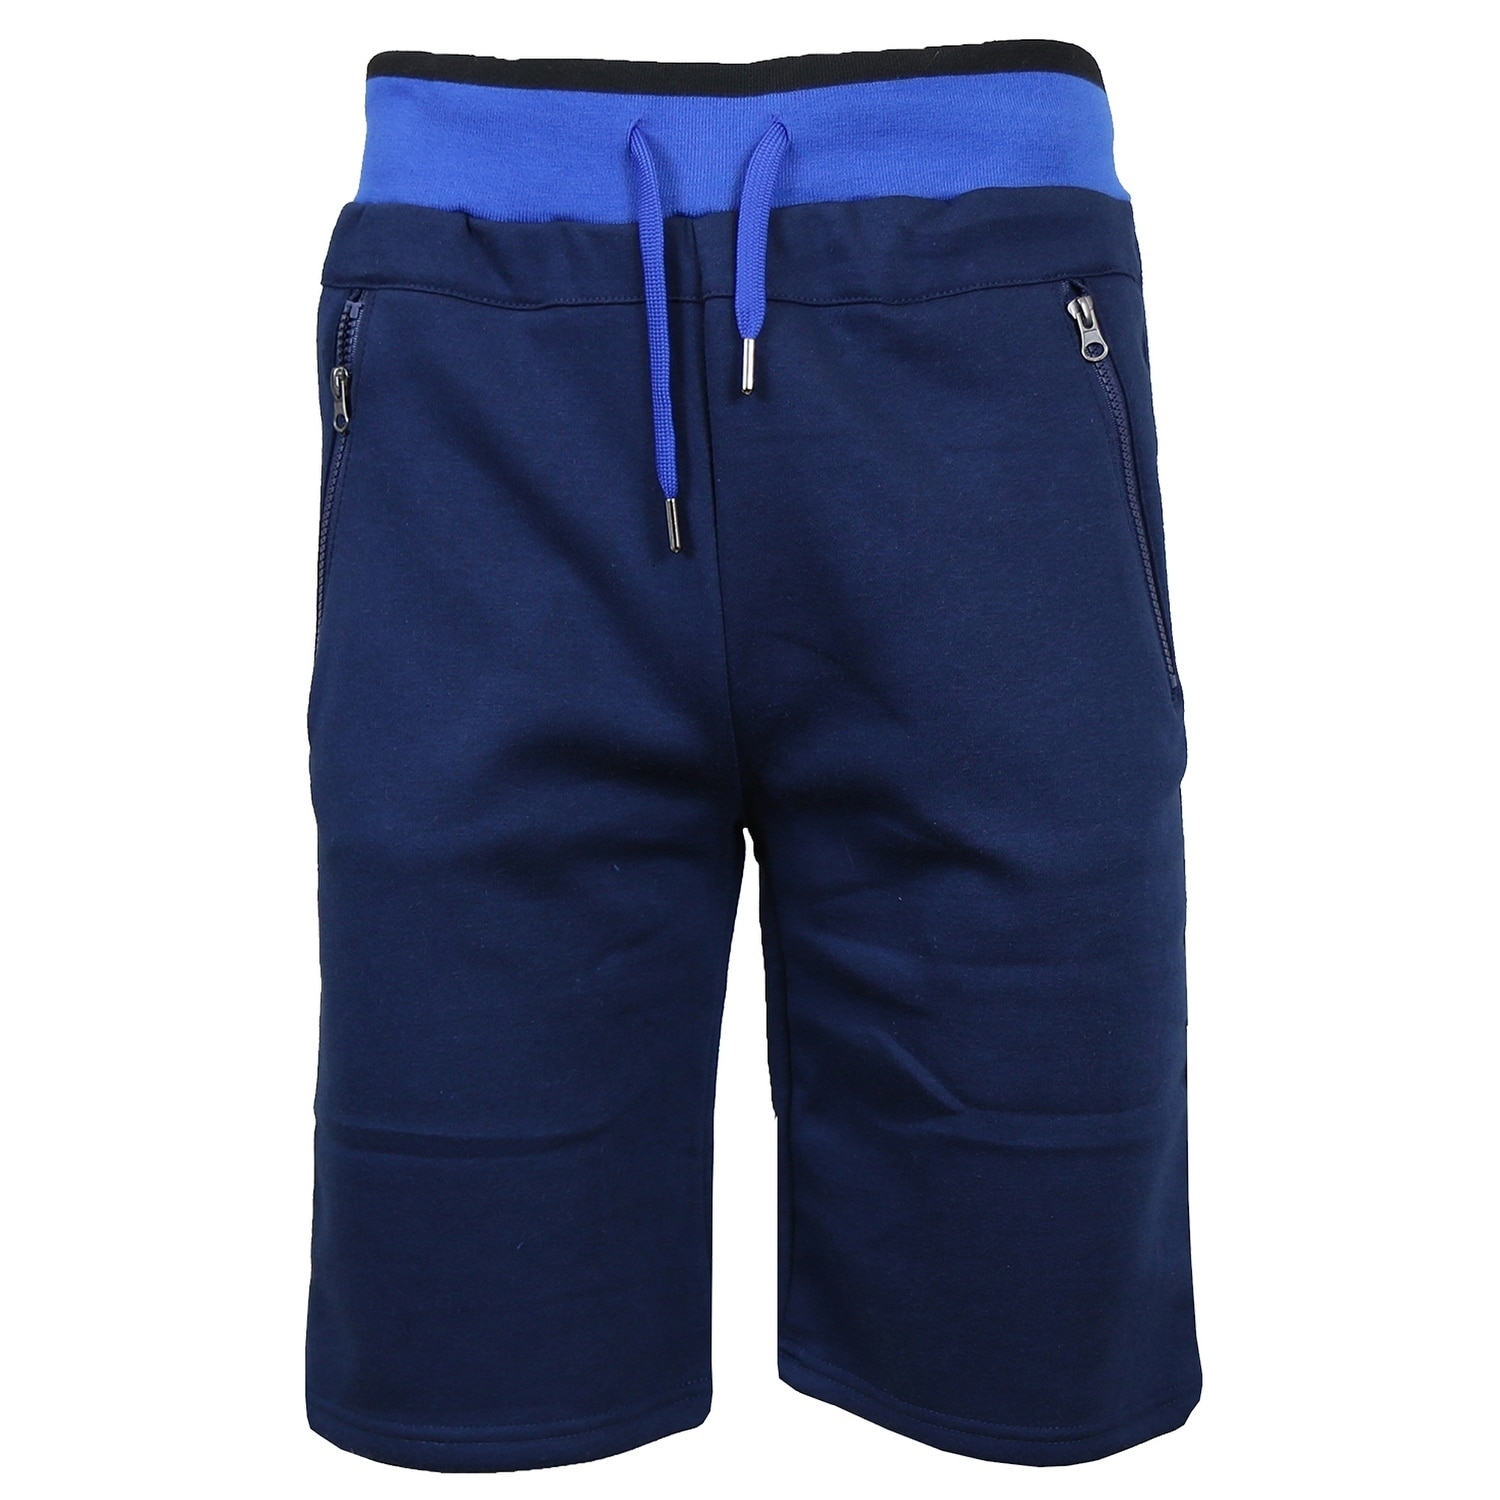 jogger shorts zip pockets